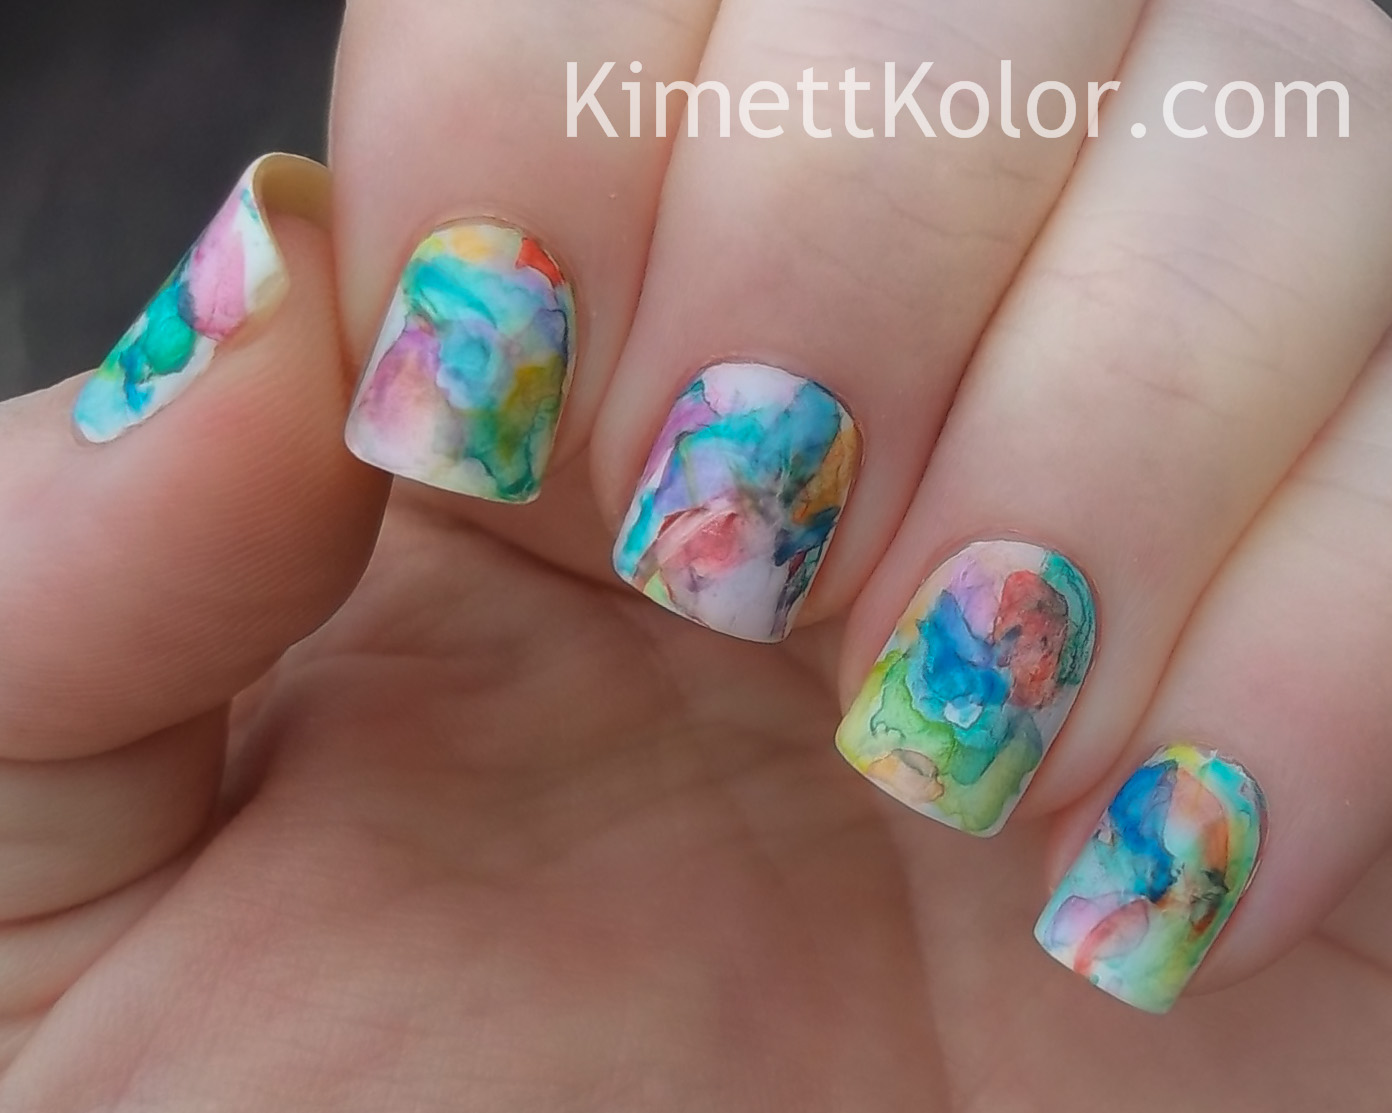 https://www.kimettkolor.com/2014/03/abstract-watercolor-painting-on-my-nails.html